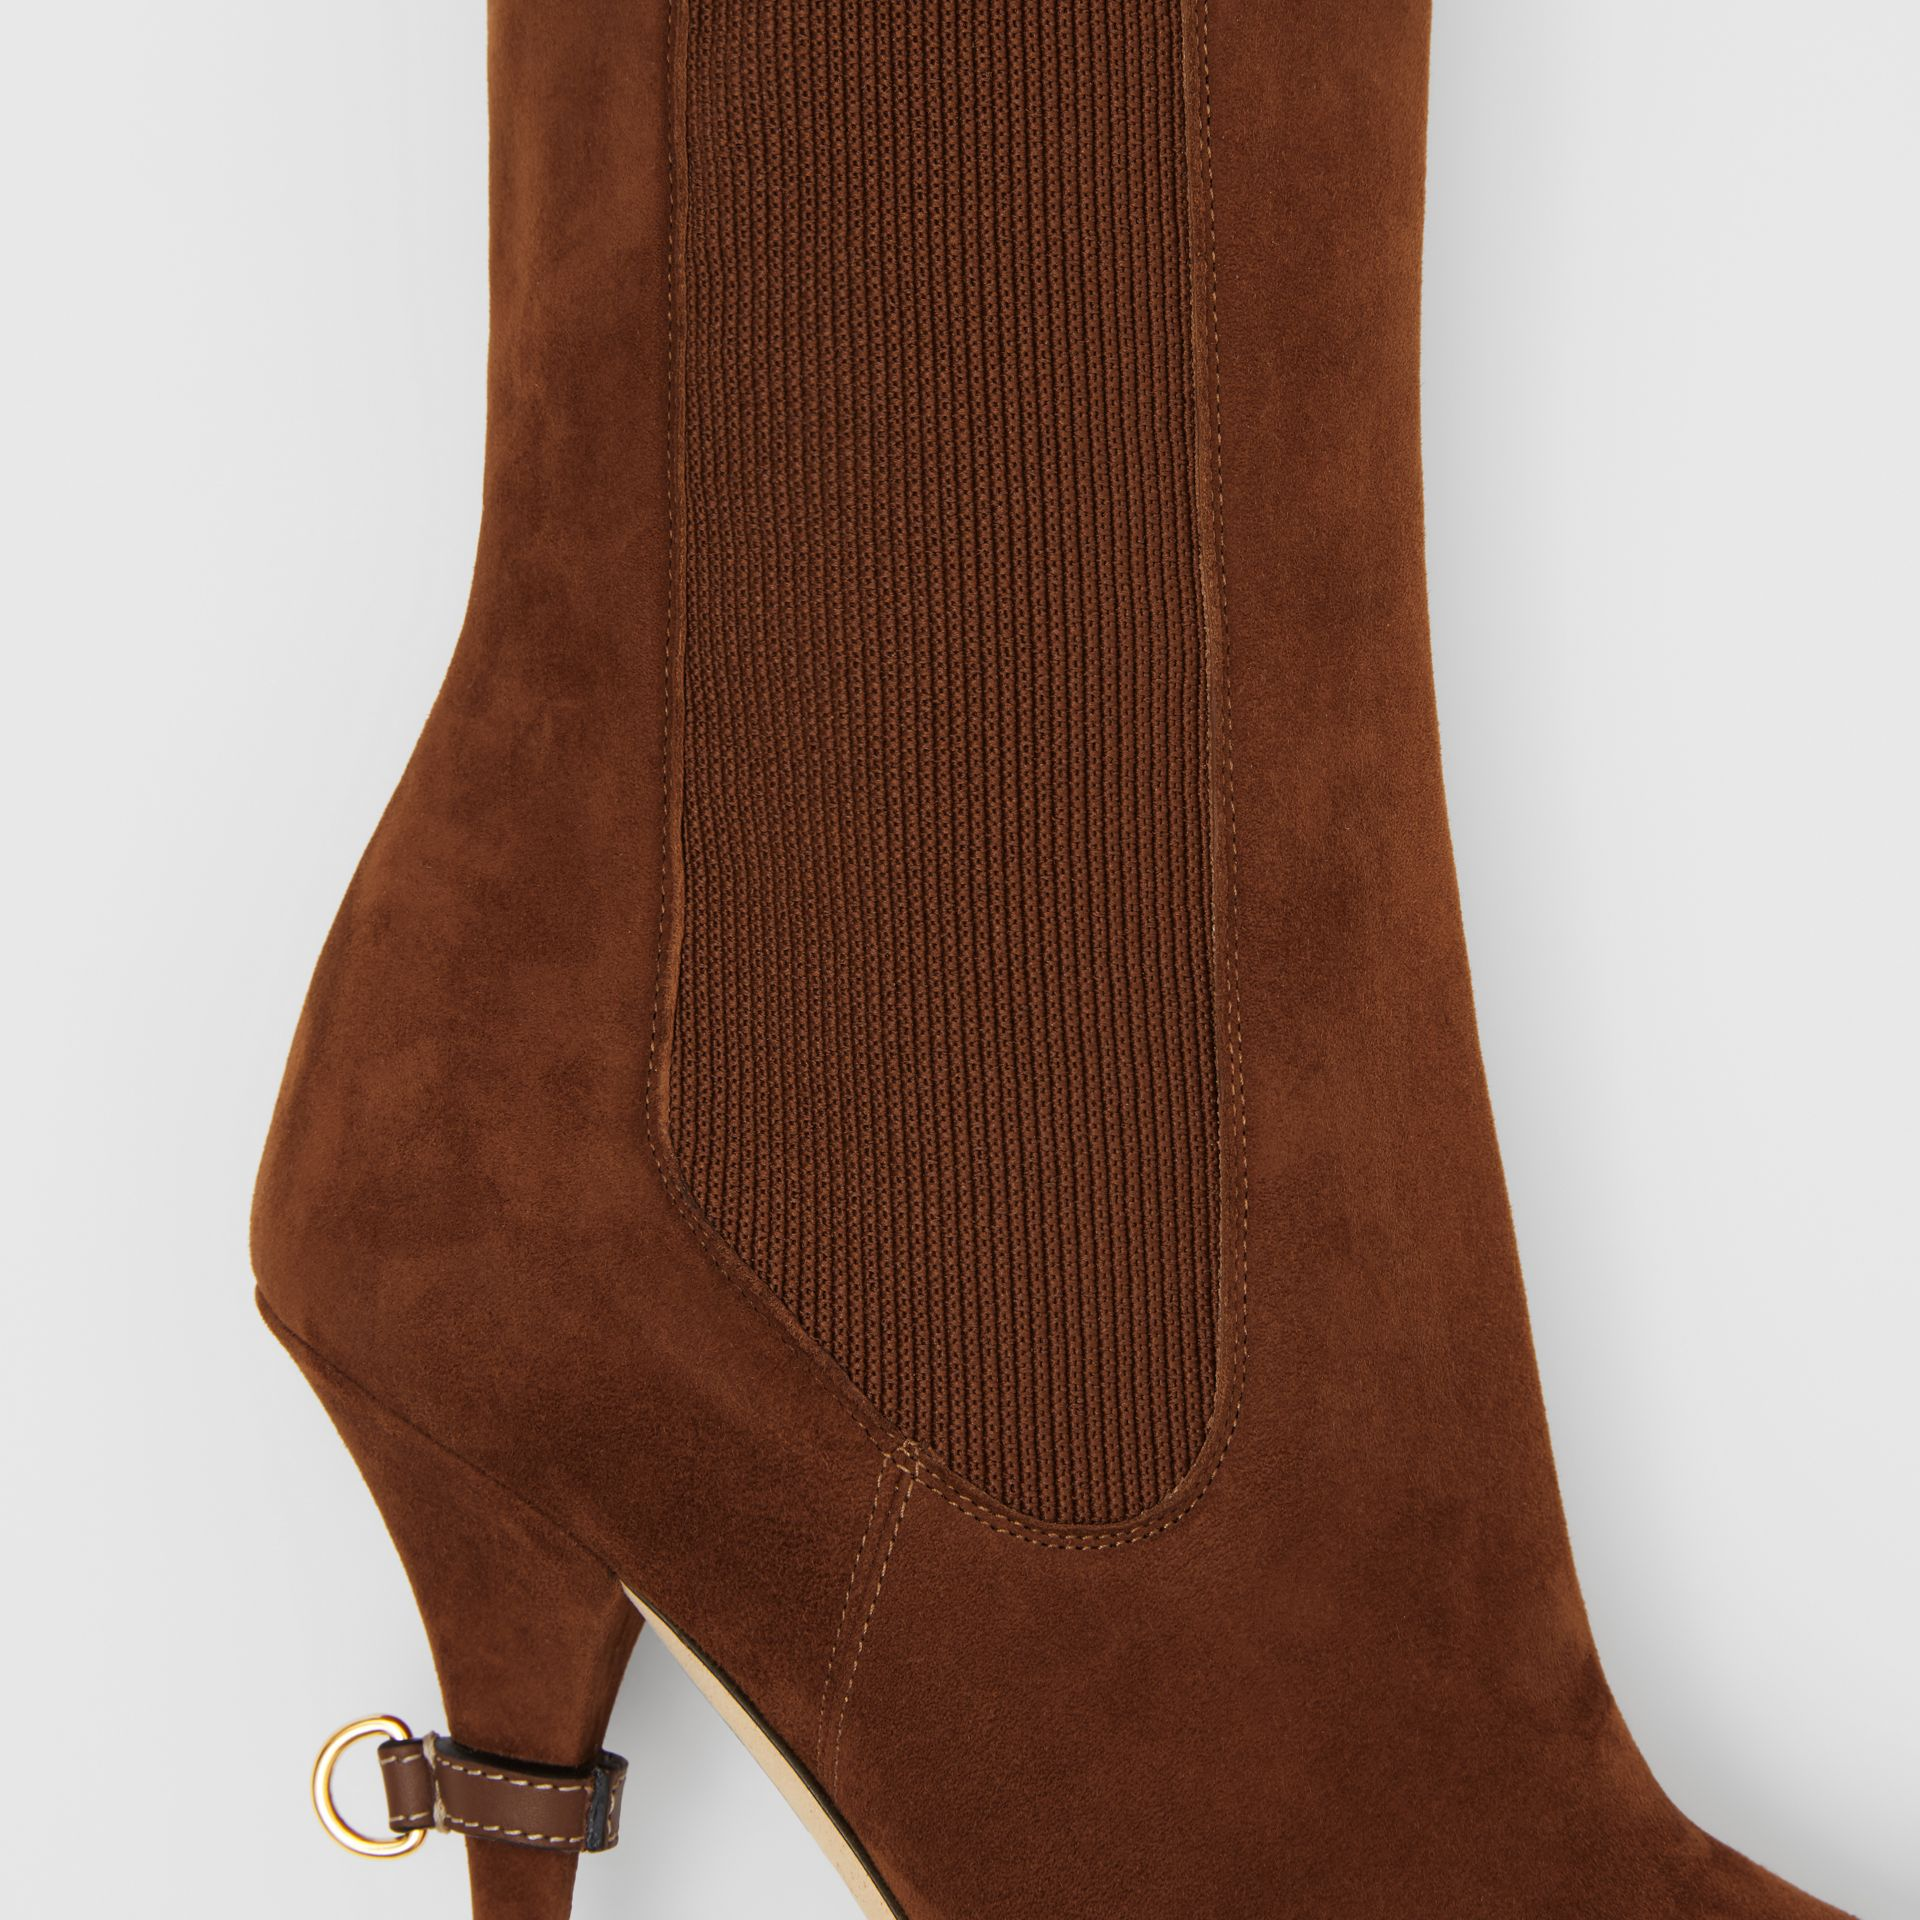 D-ring Detail Suede Ankle Boots in Tan - Women | Burberry - gallery image 1